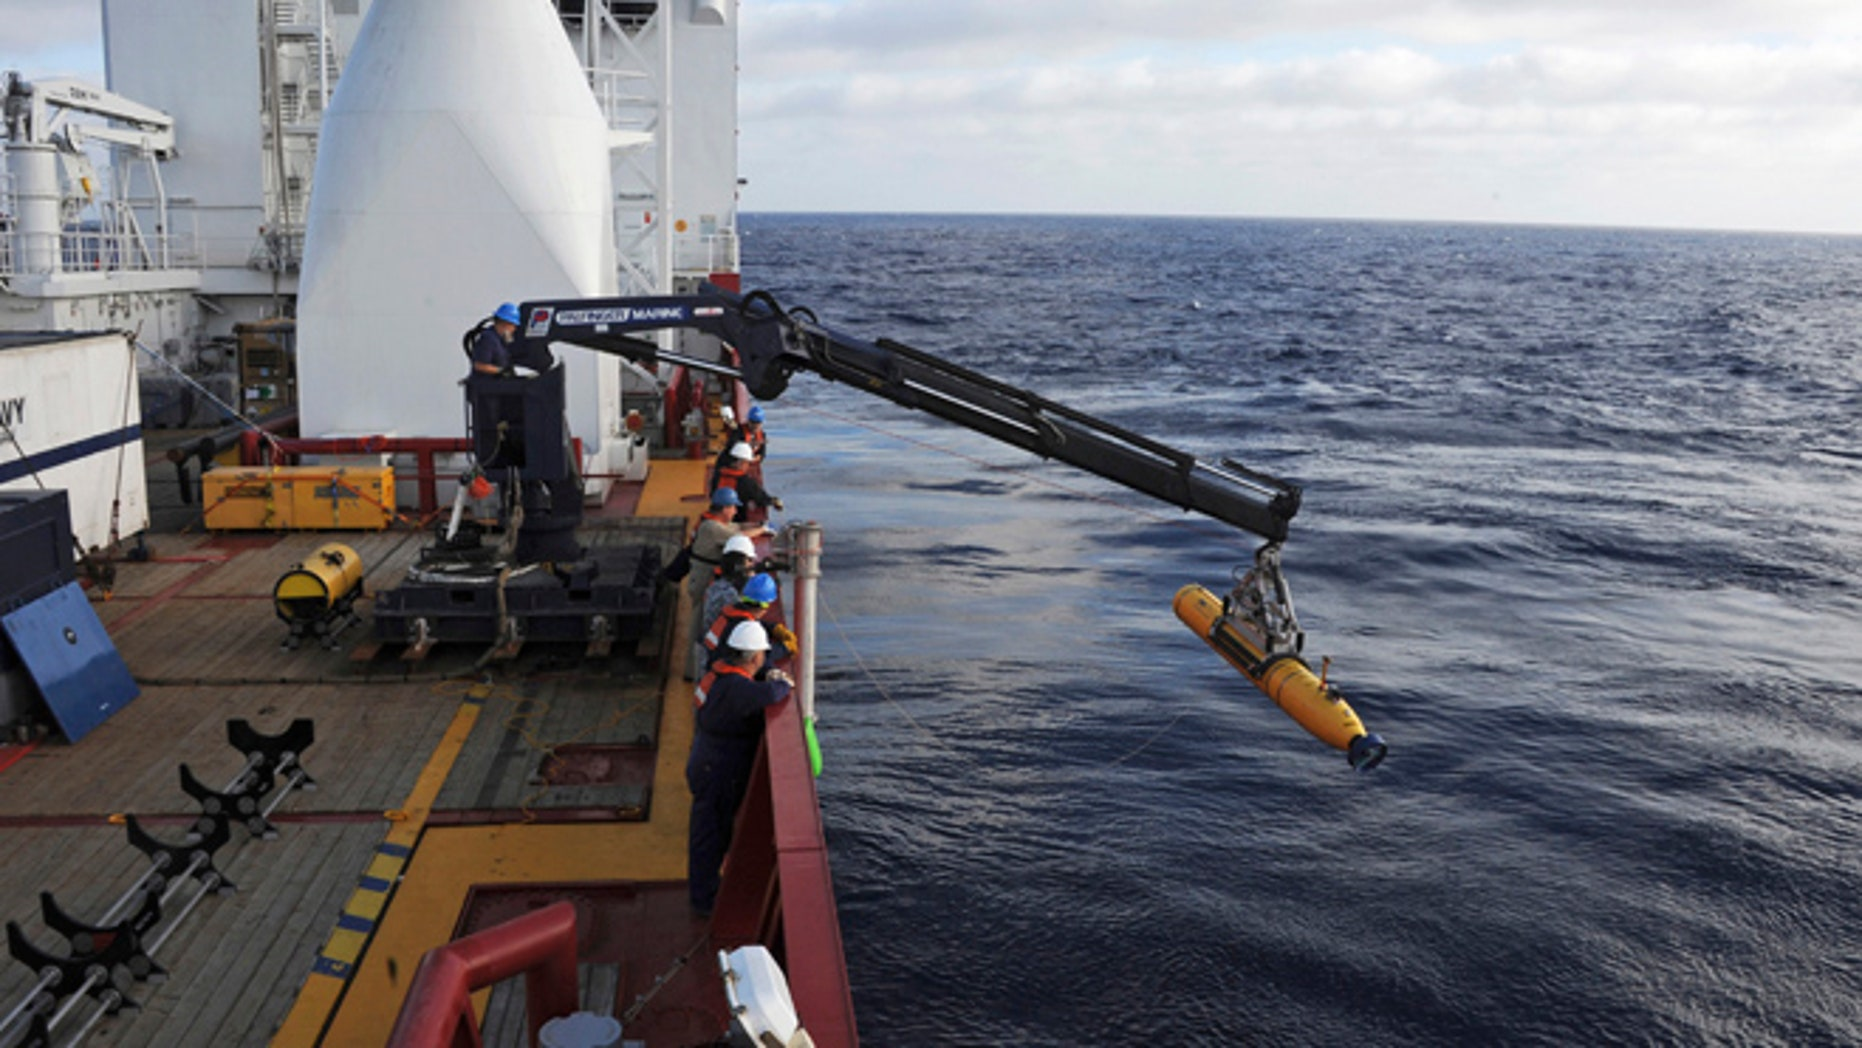 FILE 2014: Operators aboard the Australian Defense Vessel Ocean Shield move the U.S. Navy's Bluefin 21 autonomous underwater vehicle into position for deployment in the Southern Indian Ocean.